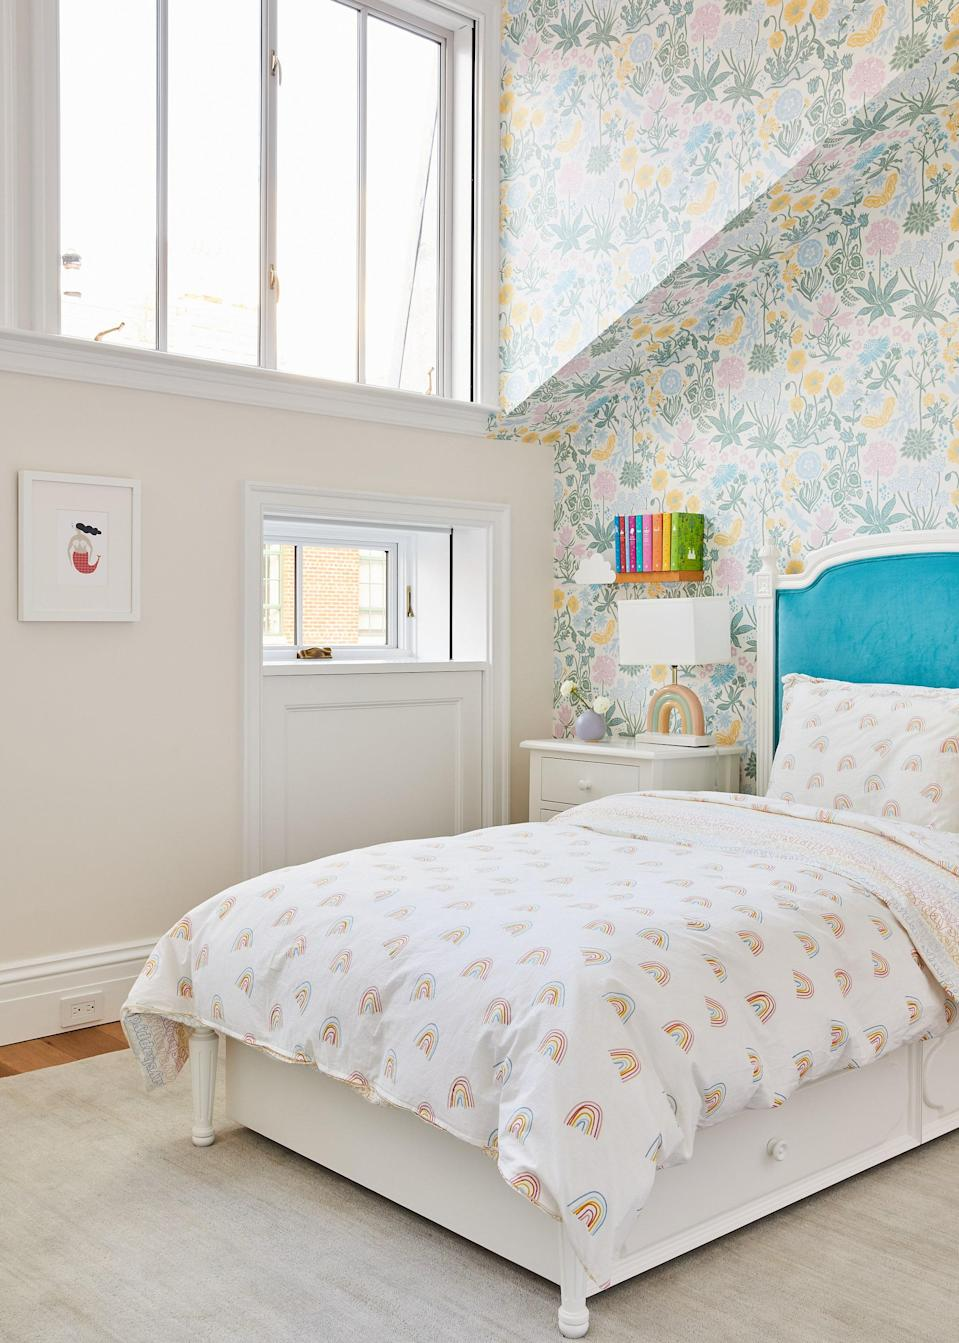 Floral Sandberg wallpaper and a vibrant blue on the Beautiful Bed Co. headboard strike a playful note in the daughter's room.